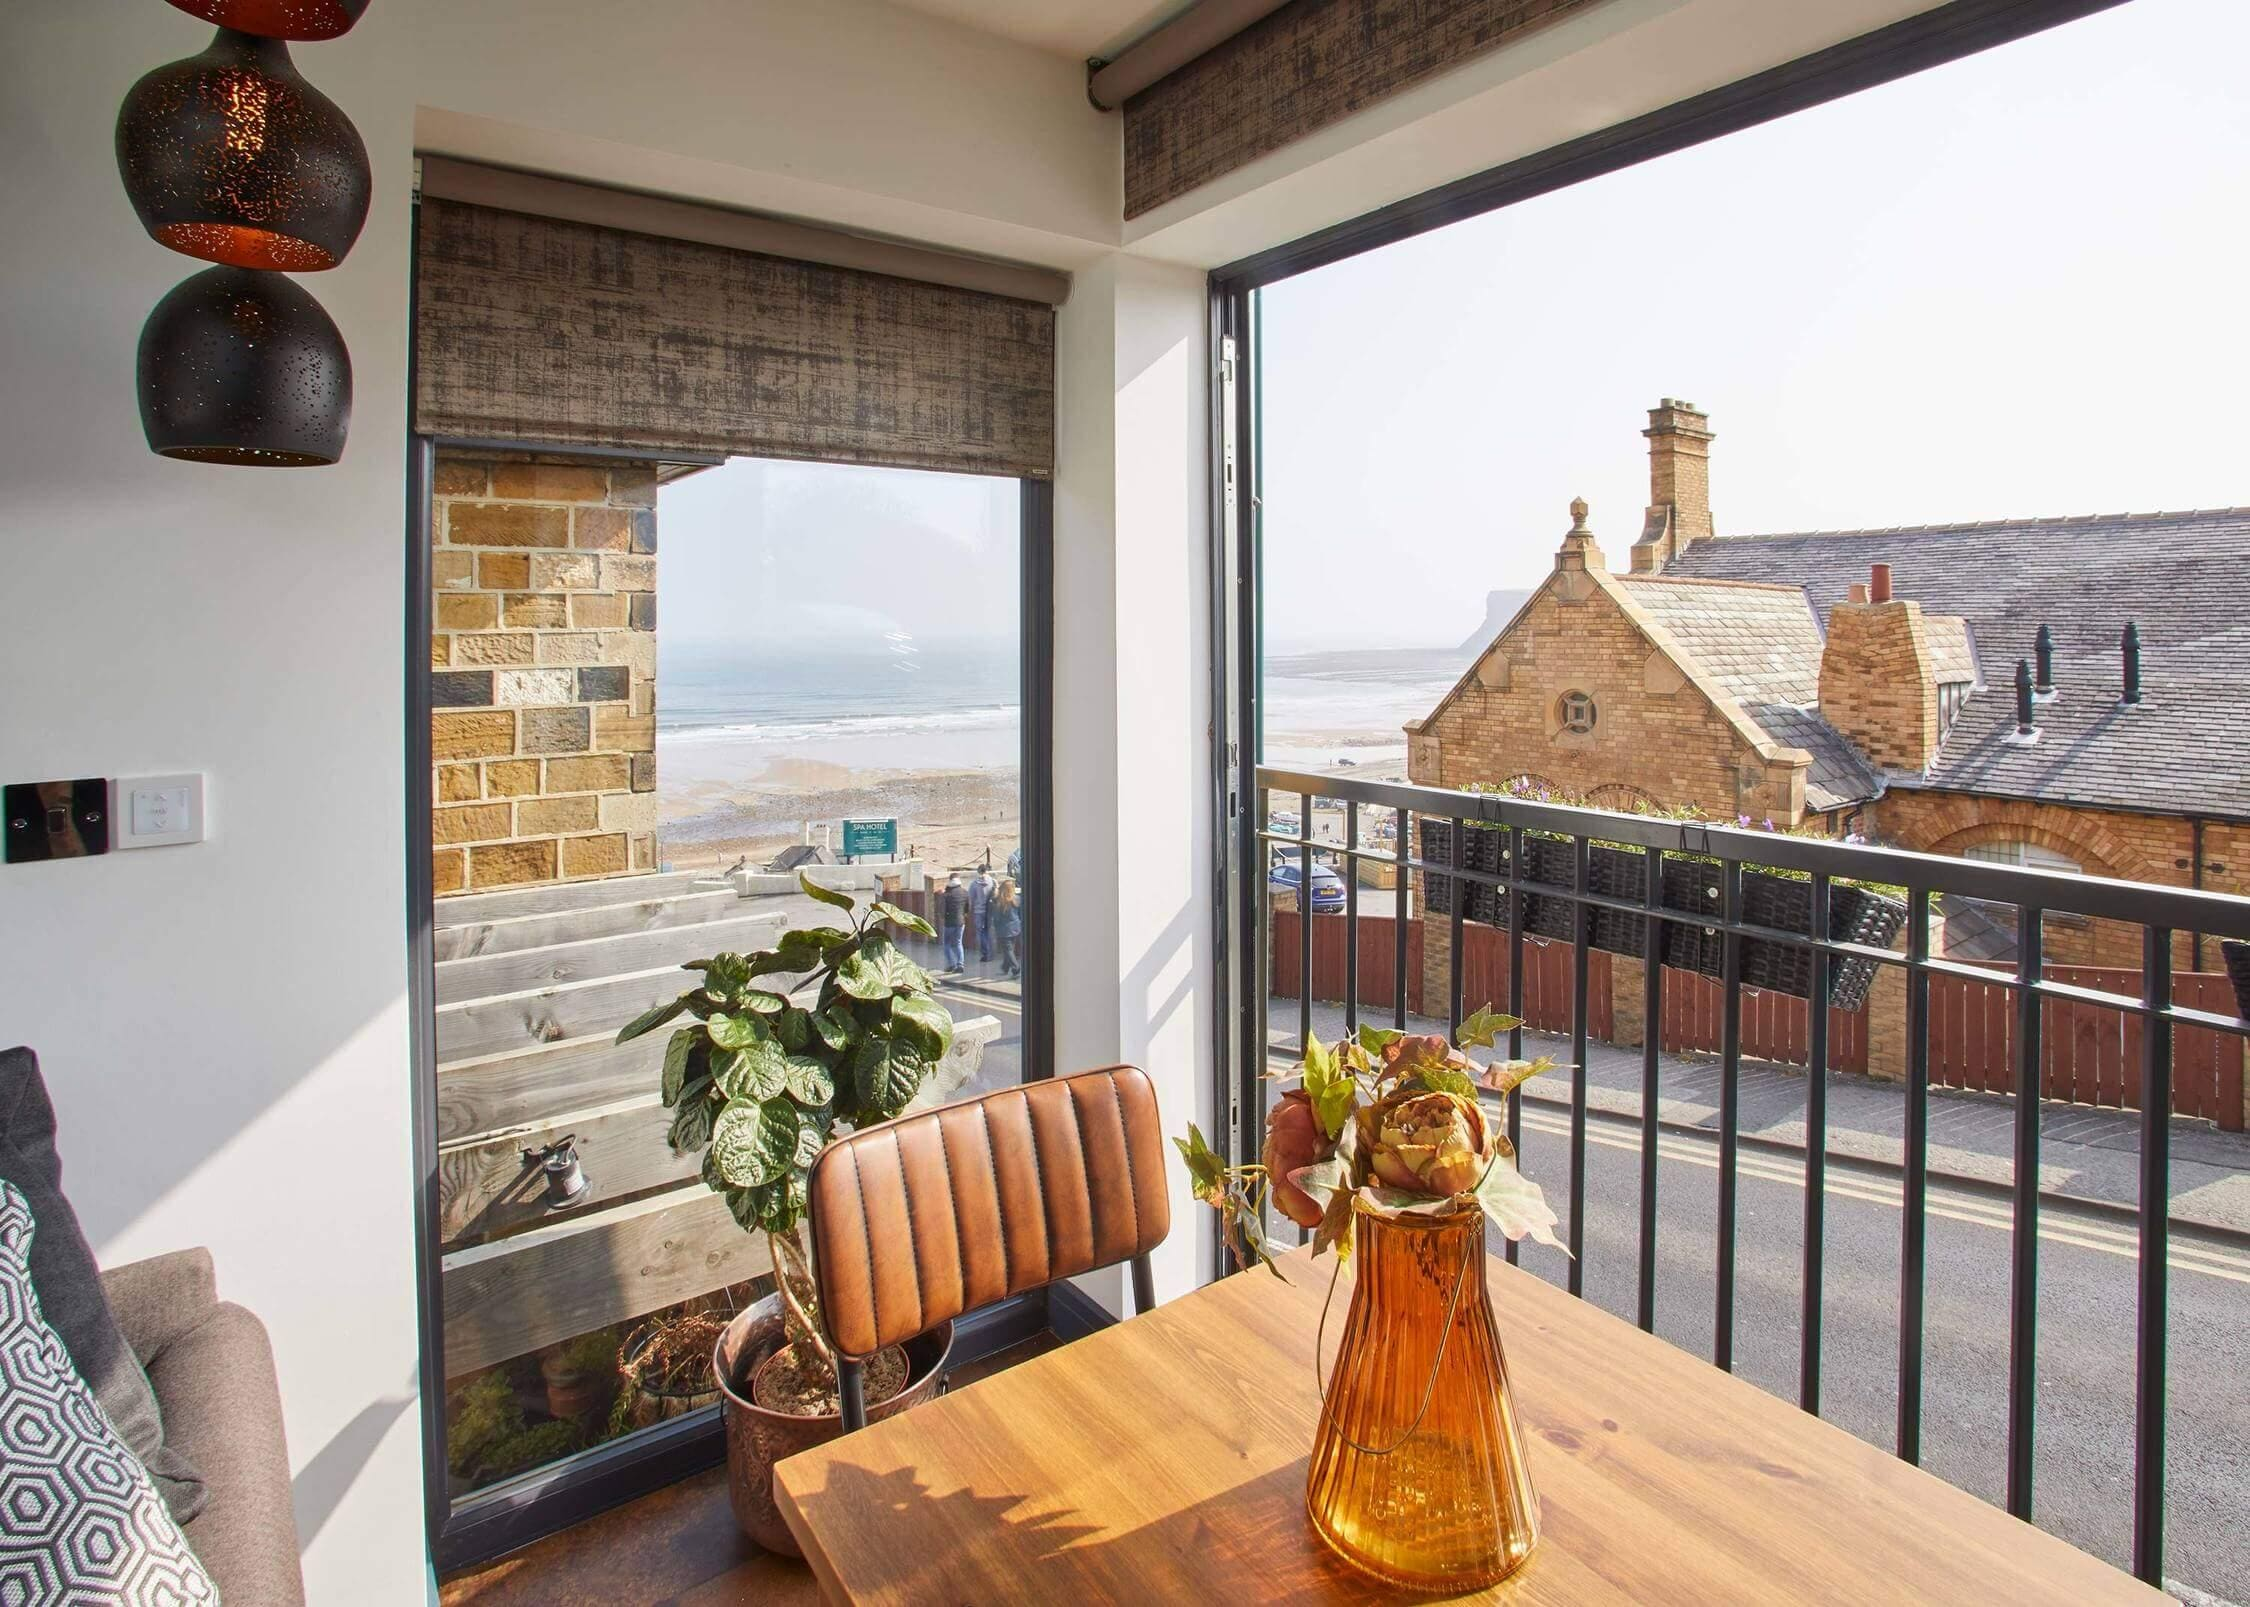 Property Image 2 - Impressive Luxury Cottage with Sea Views